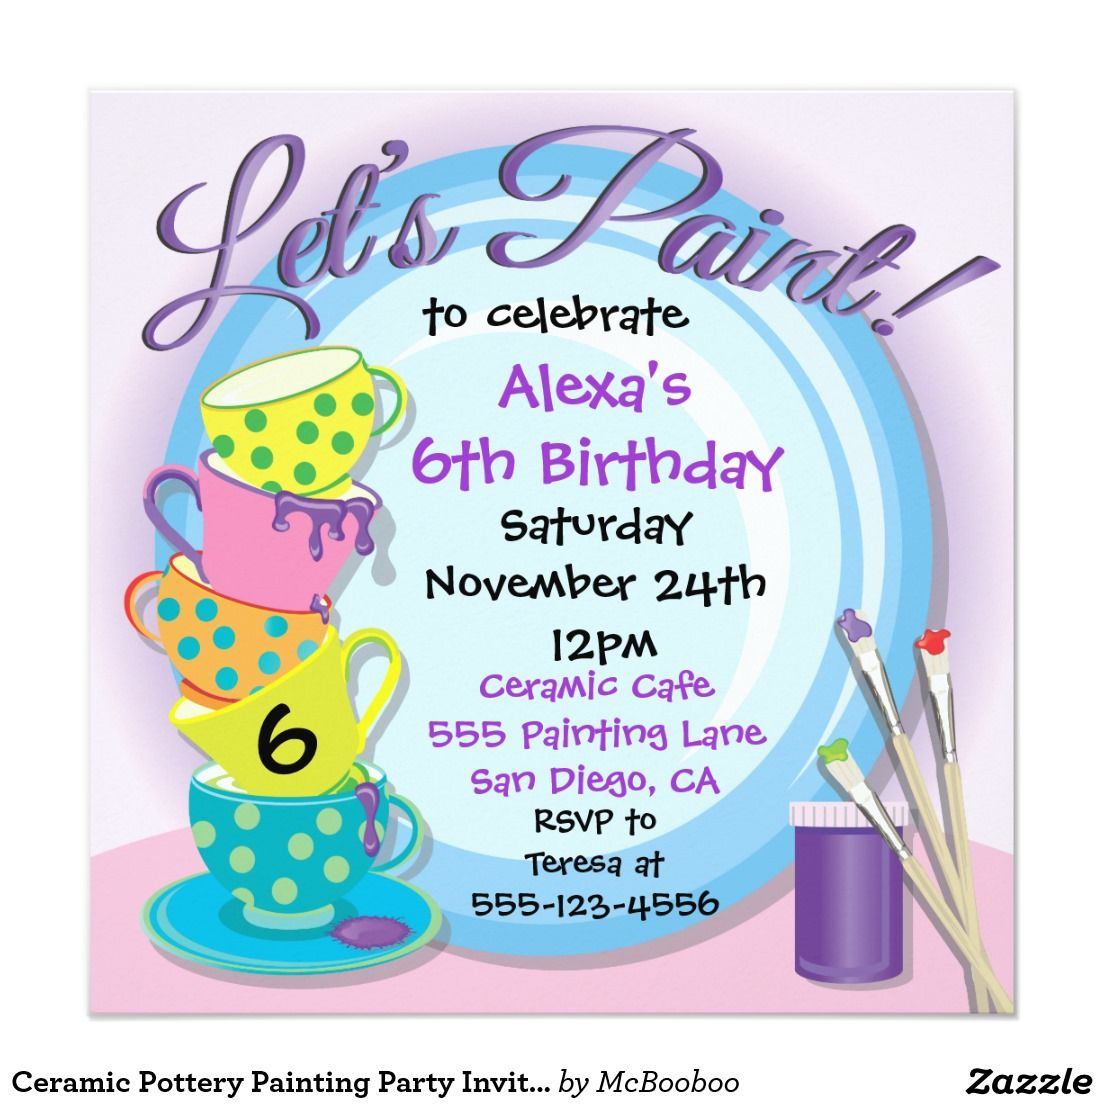 Ceramic Pottery Painting Party Invitations   Party invitations ...